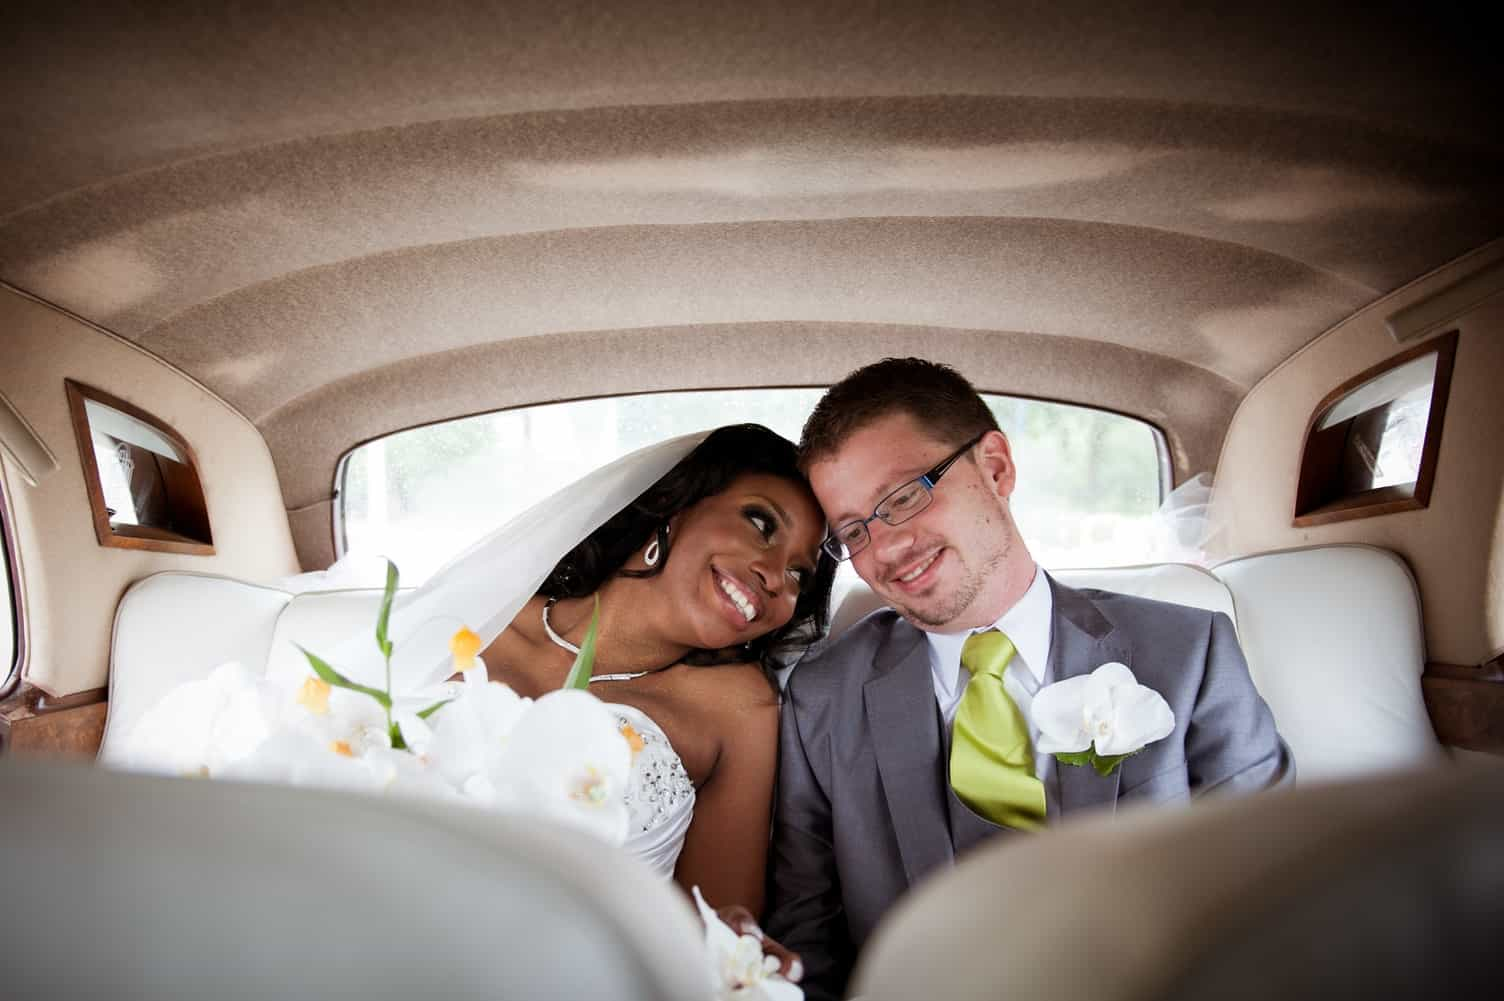 6 True Struggles of Interracial Relationships (and How to Overcome Them)